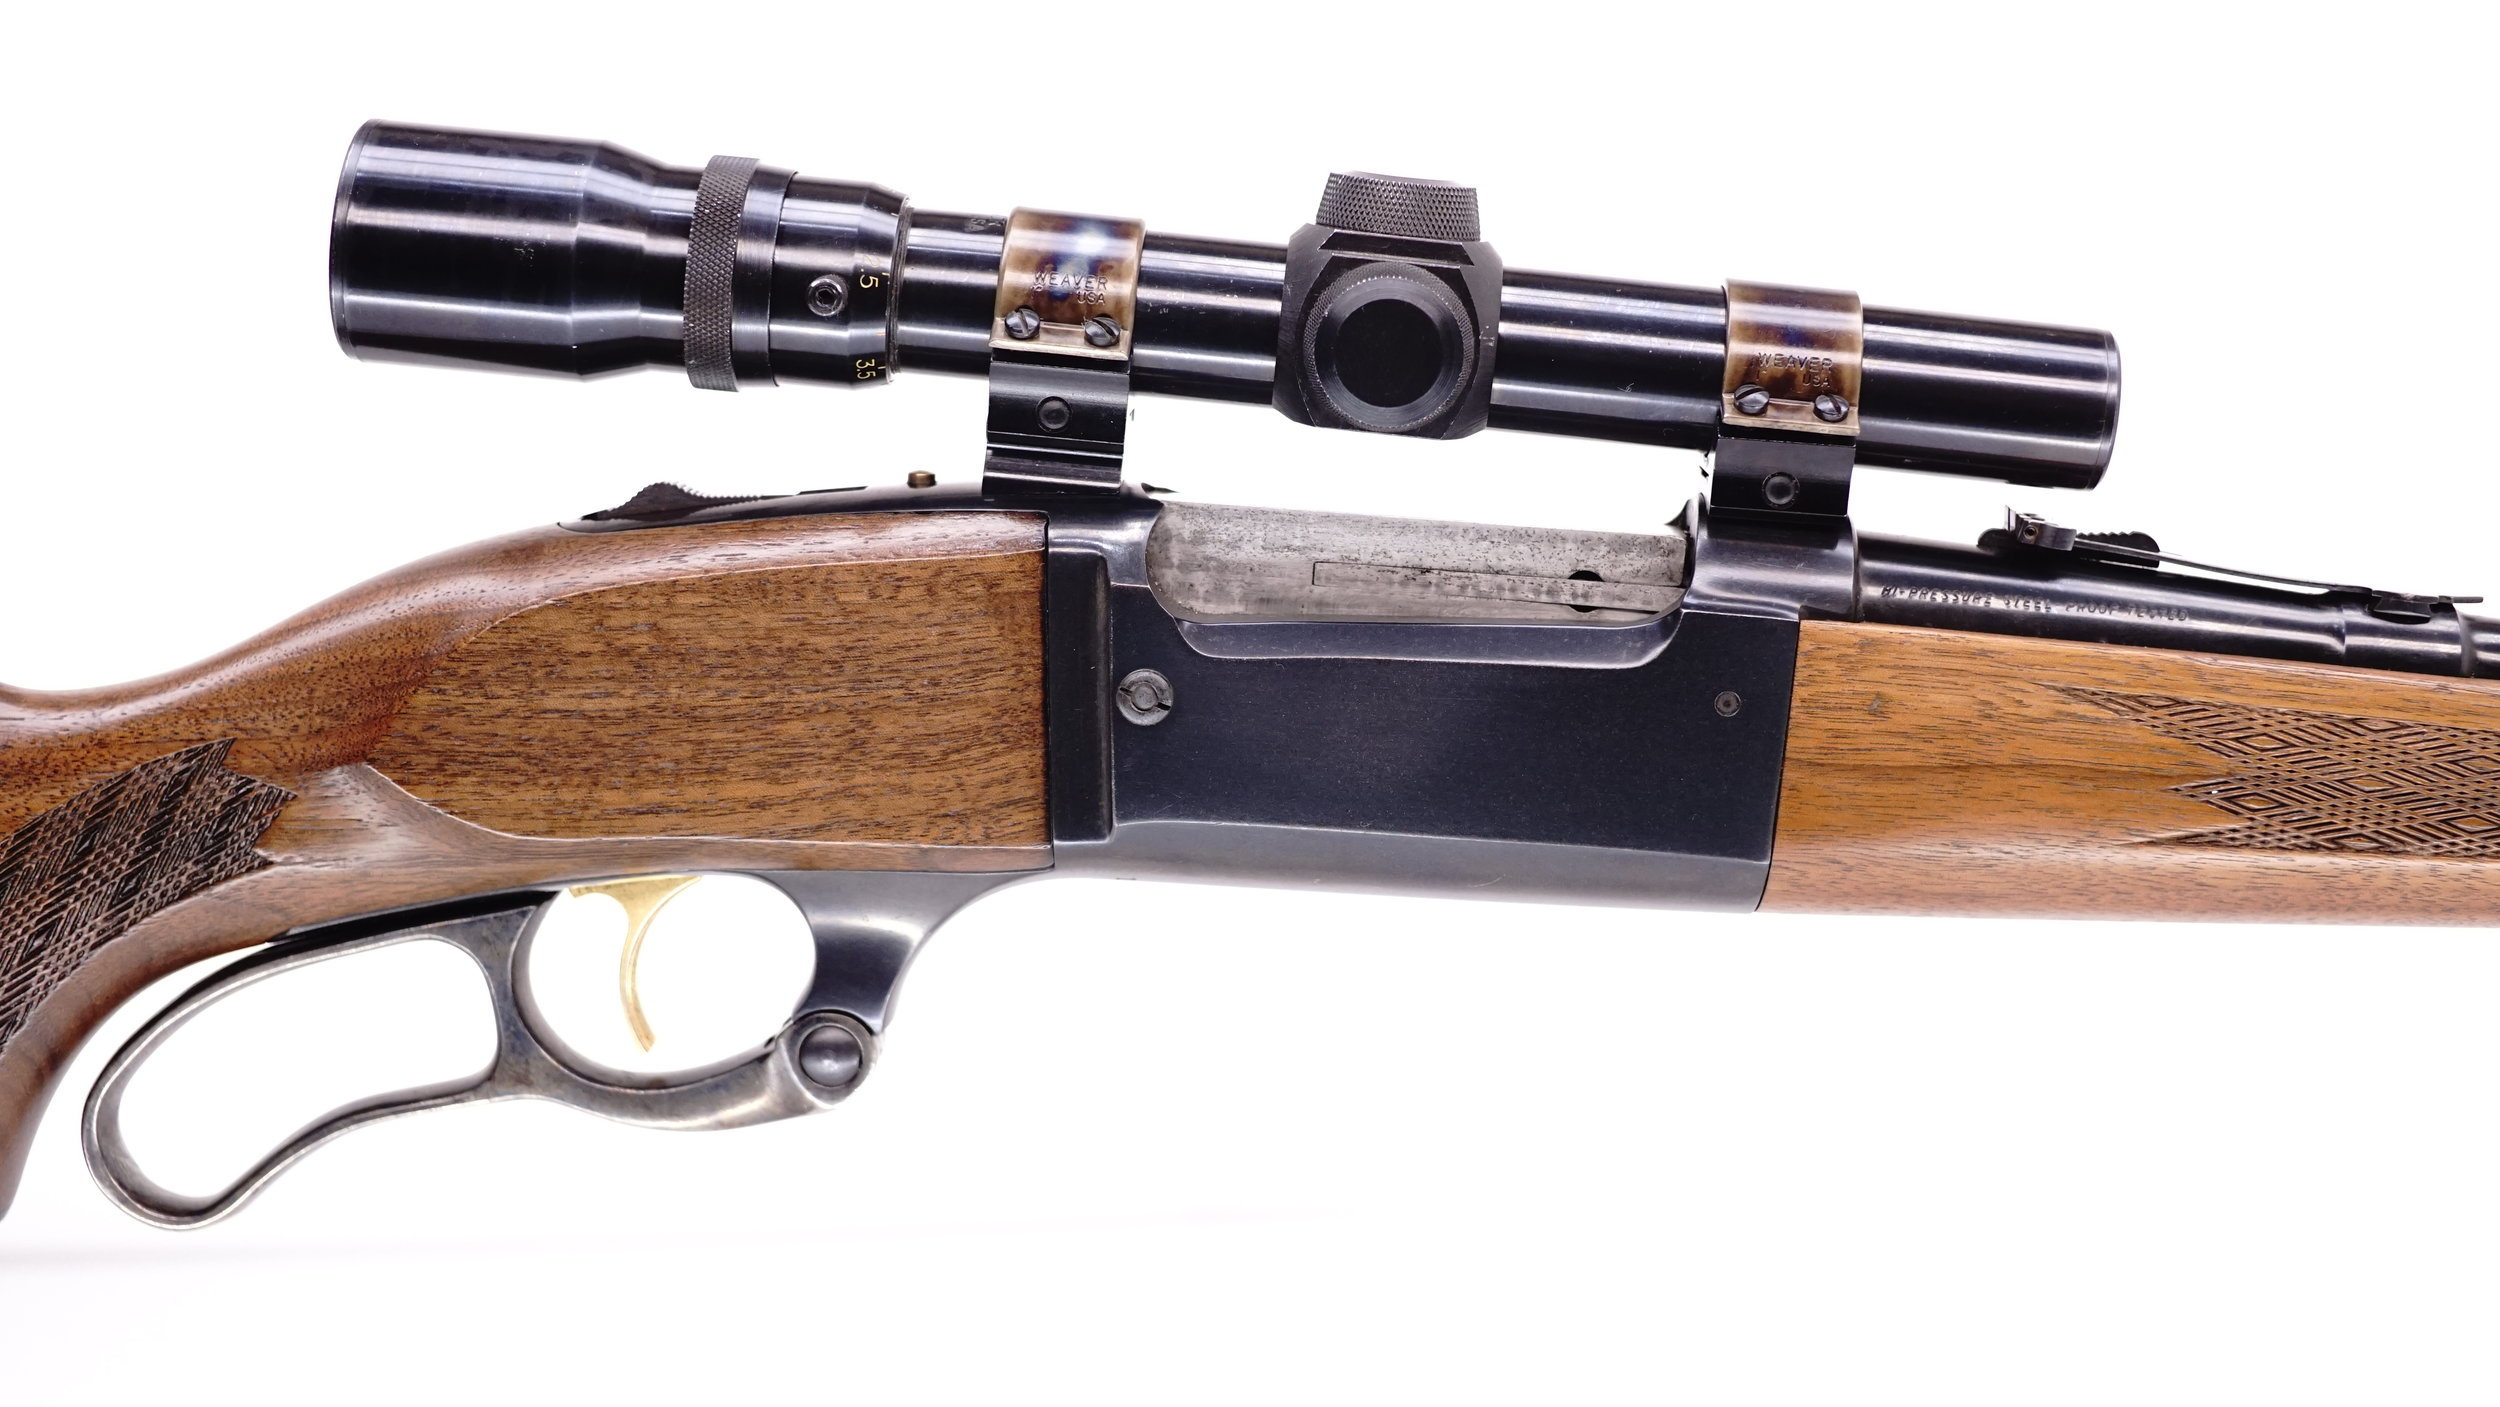 A Weaver V4.5-1, 1.5x-4.5x sits here on a 1967 Savage 99C.  This scope allowed the shooter to go almost from zero to 4.5, eliminating the need to keep access to iron sights for most hunters.